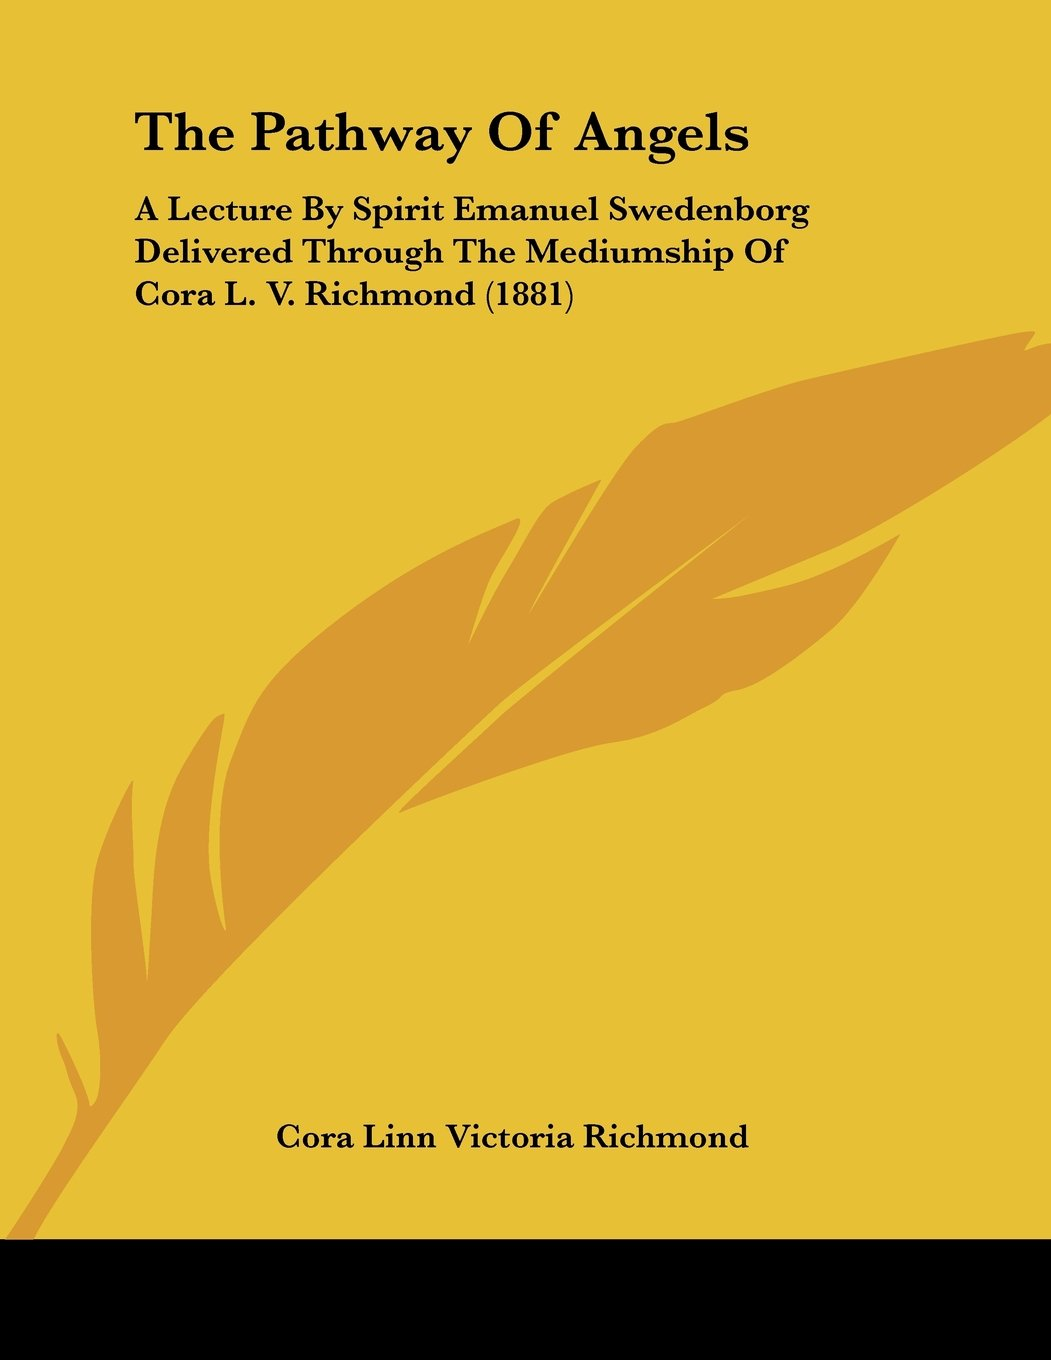 The Pathway Of Angels: A Lecture By Spirit Emanuel Swedenborg Delivered Through The Mediumship Of Cora L. V. Richmond (1881) ebook